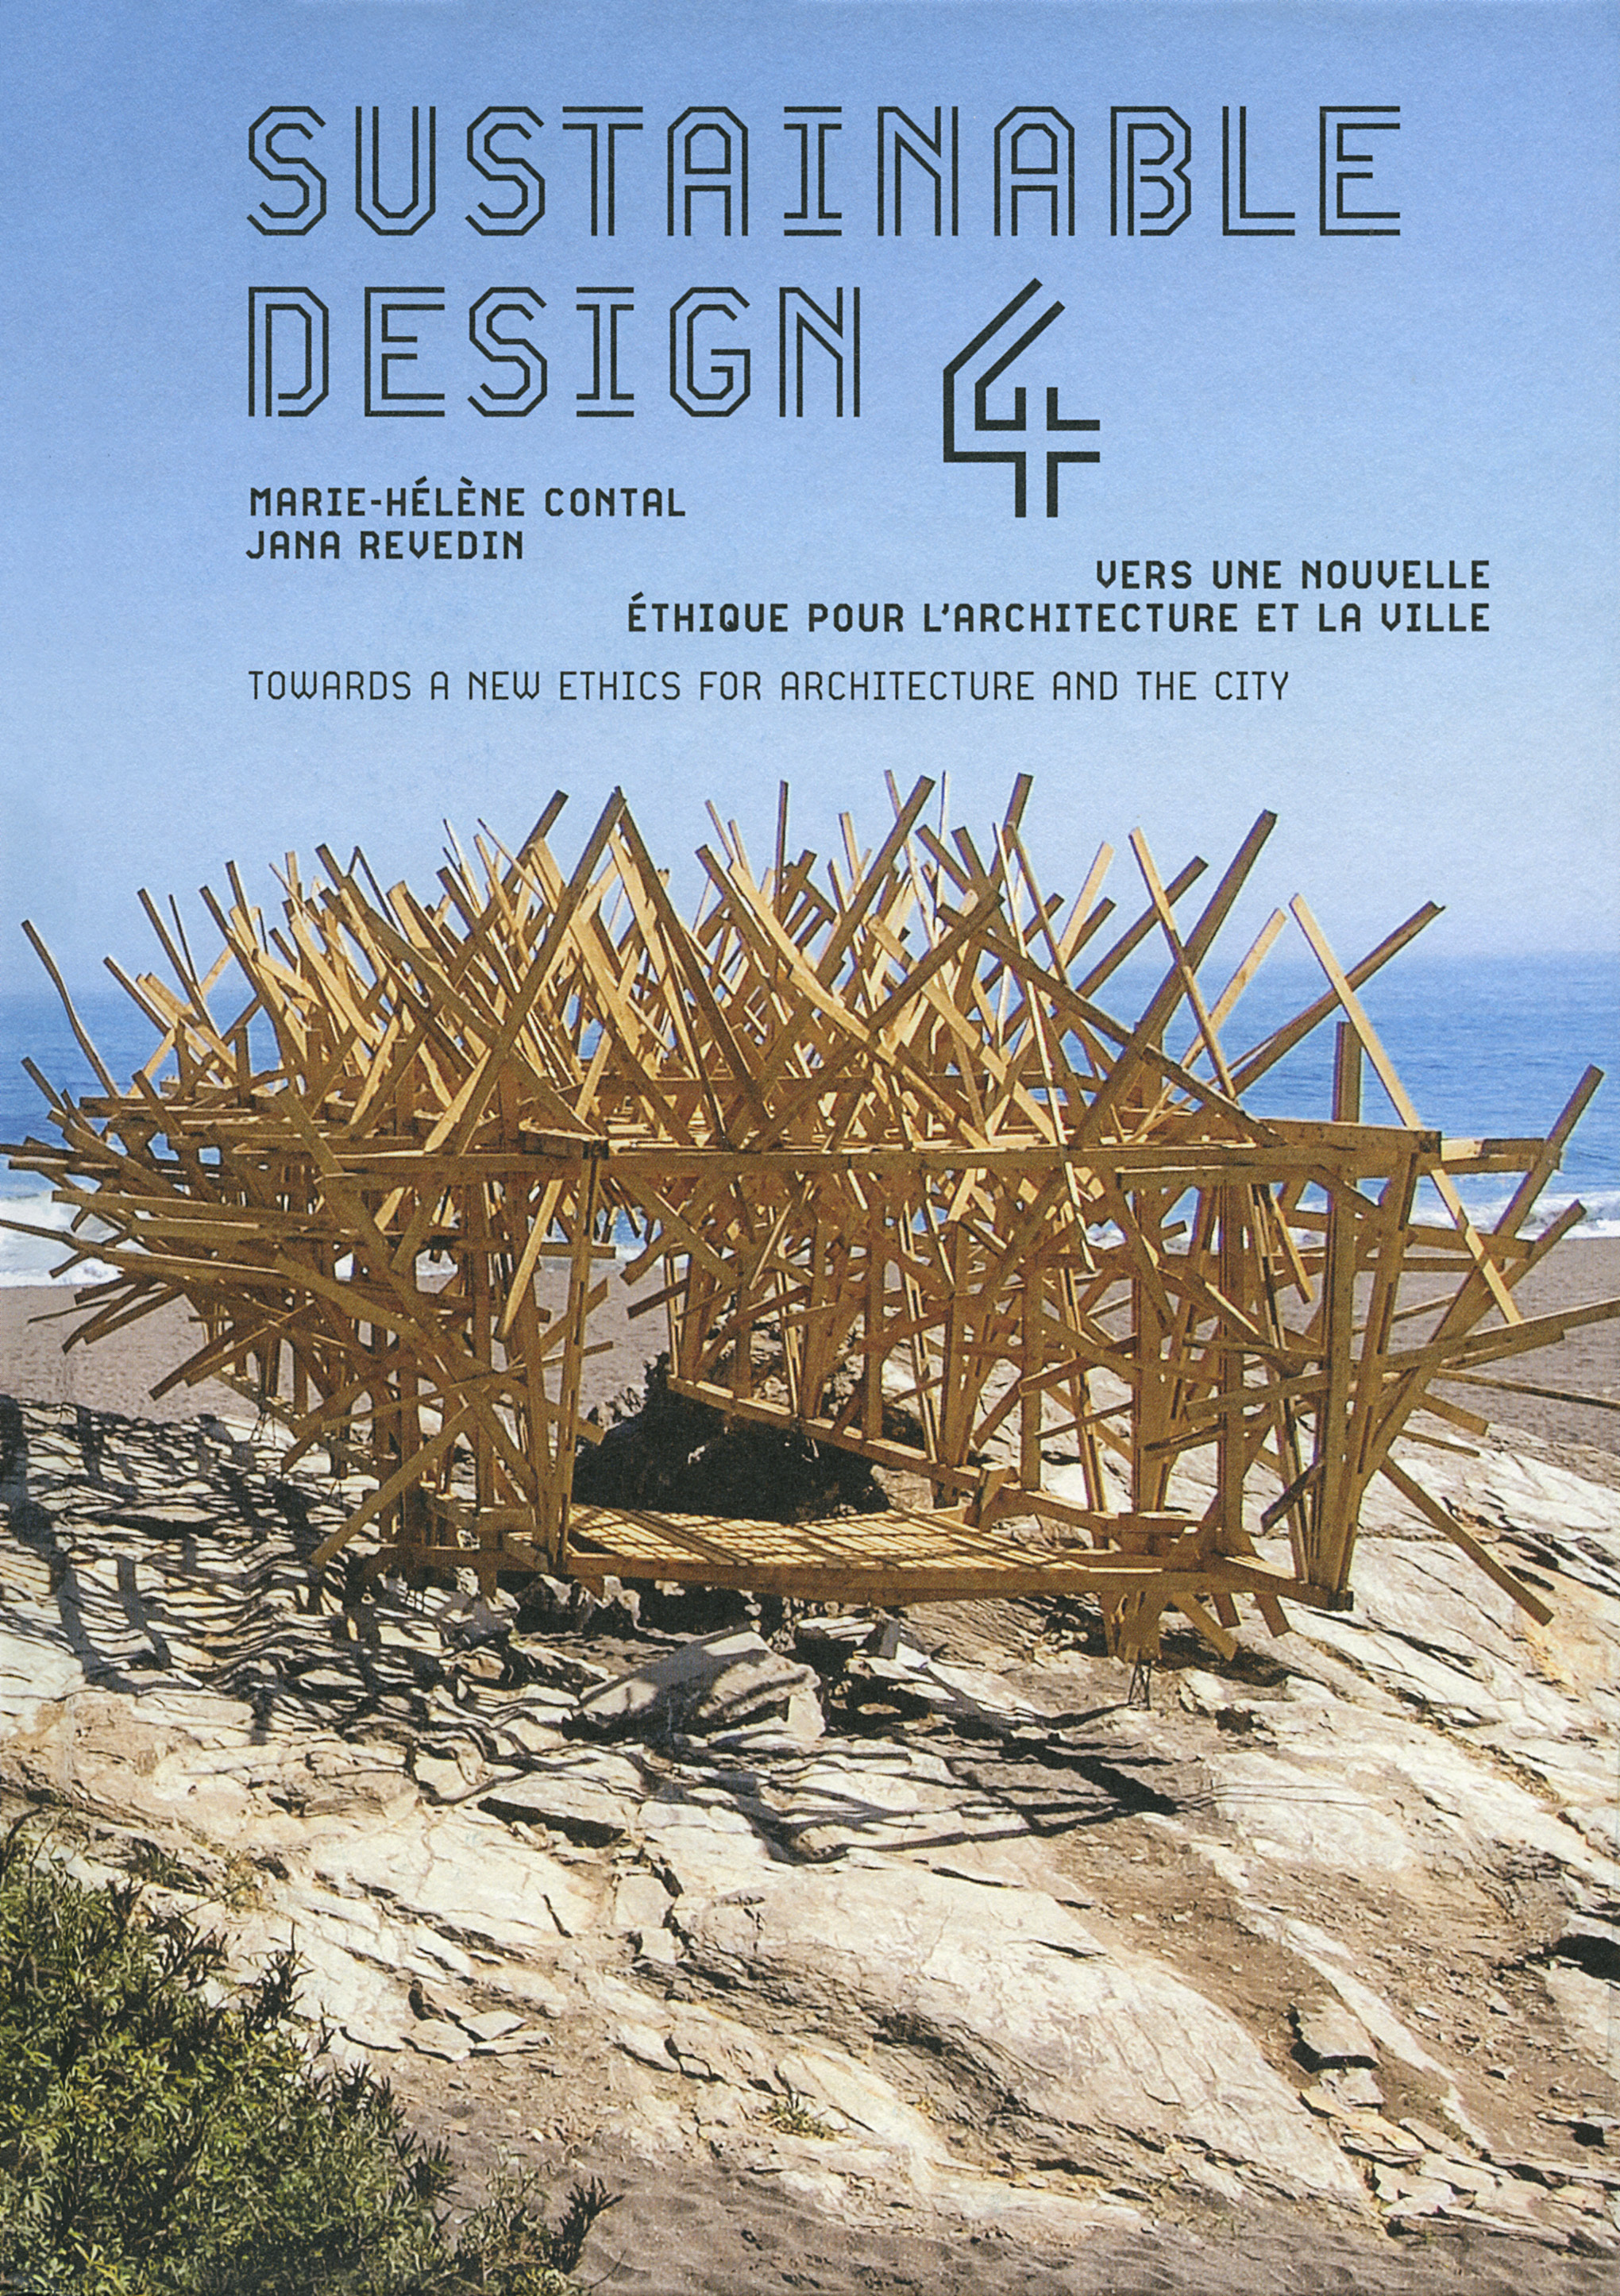 SUSTAINABLE DESIGN 4